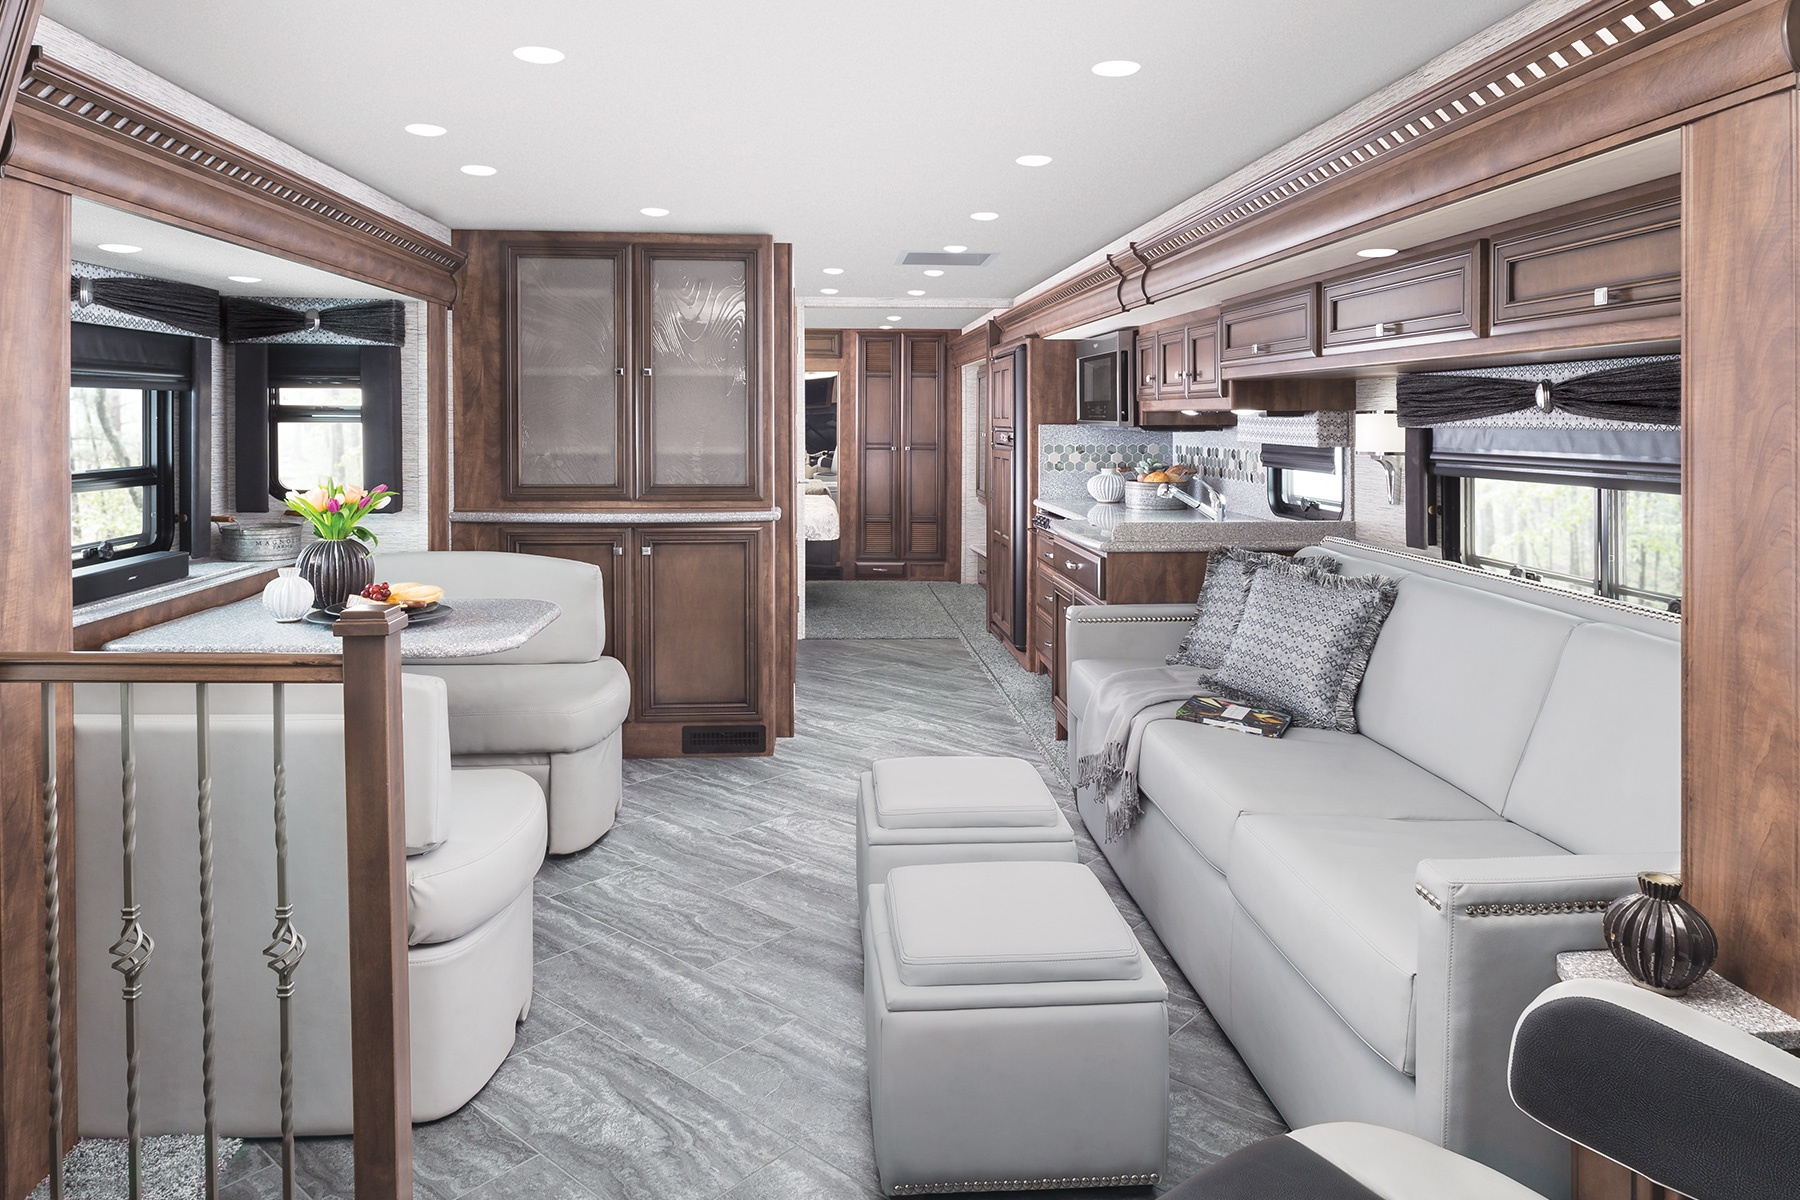 Interior living room of Newmar Bay Star Class A motorhome